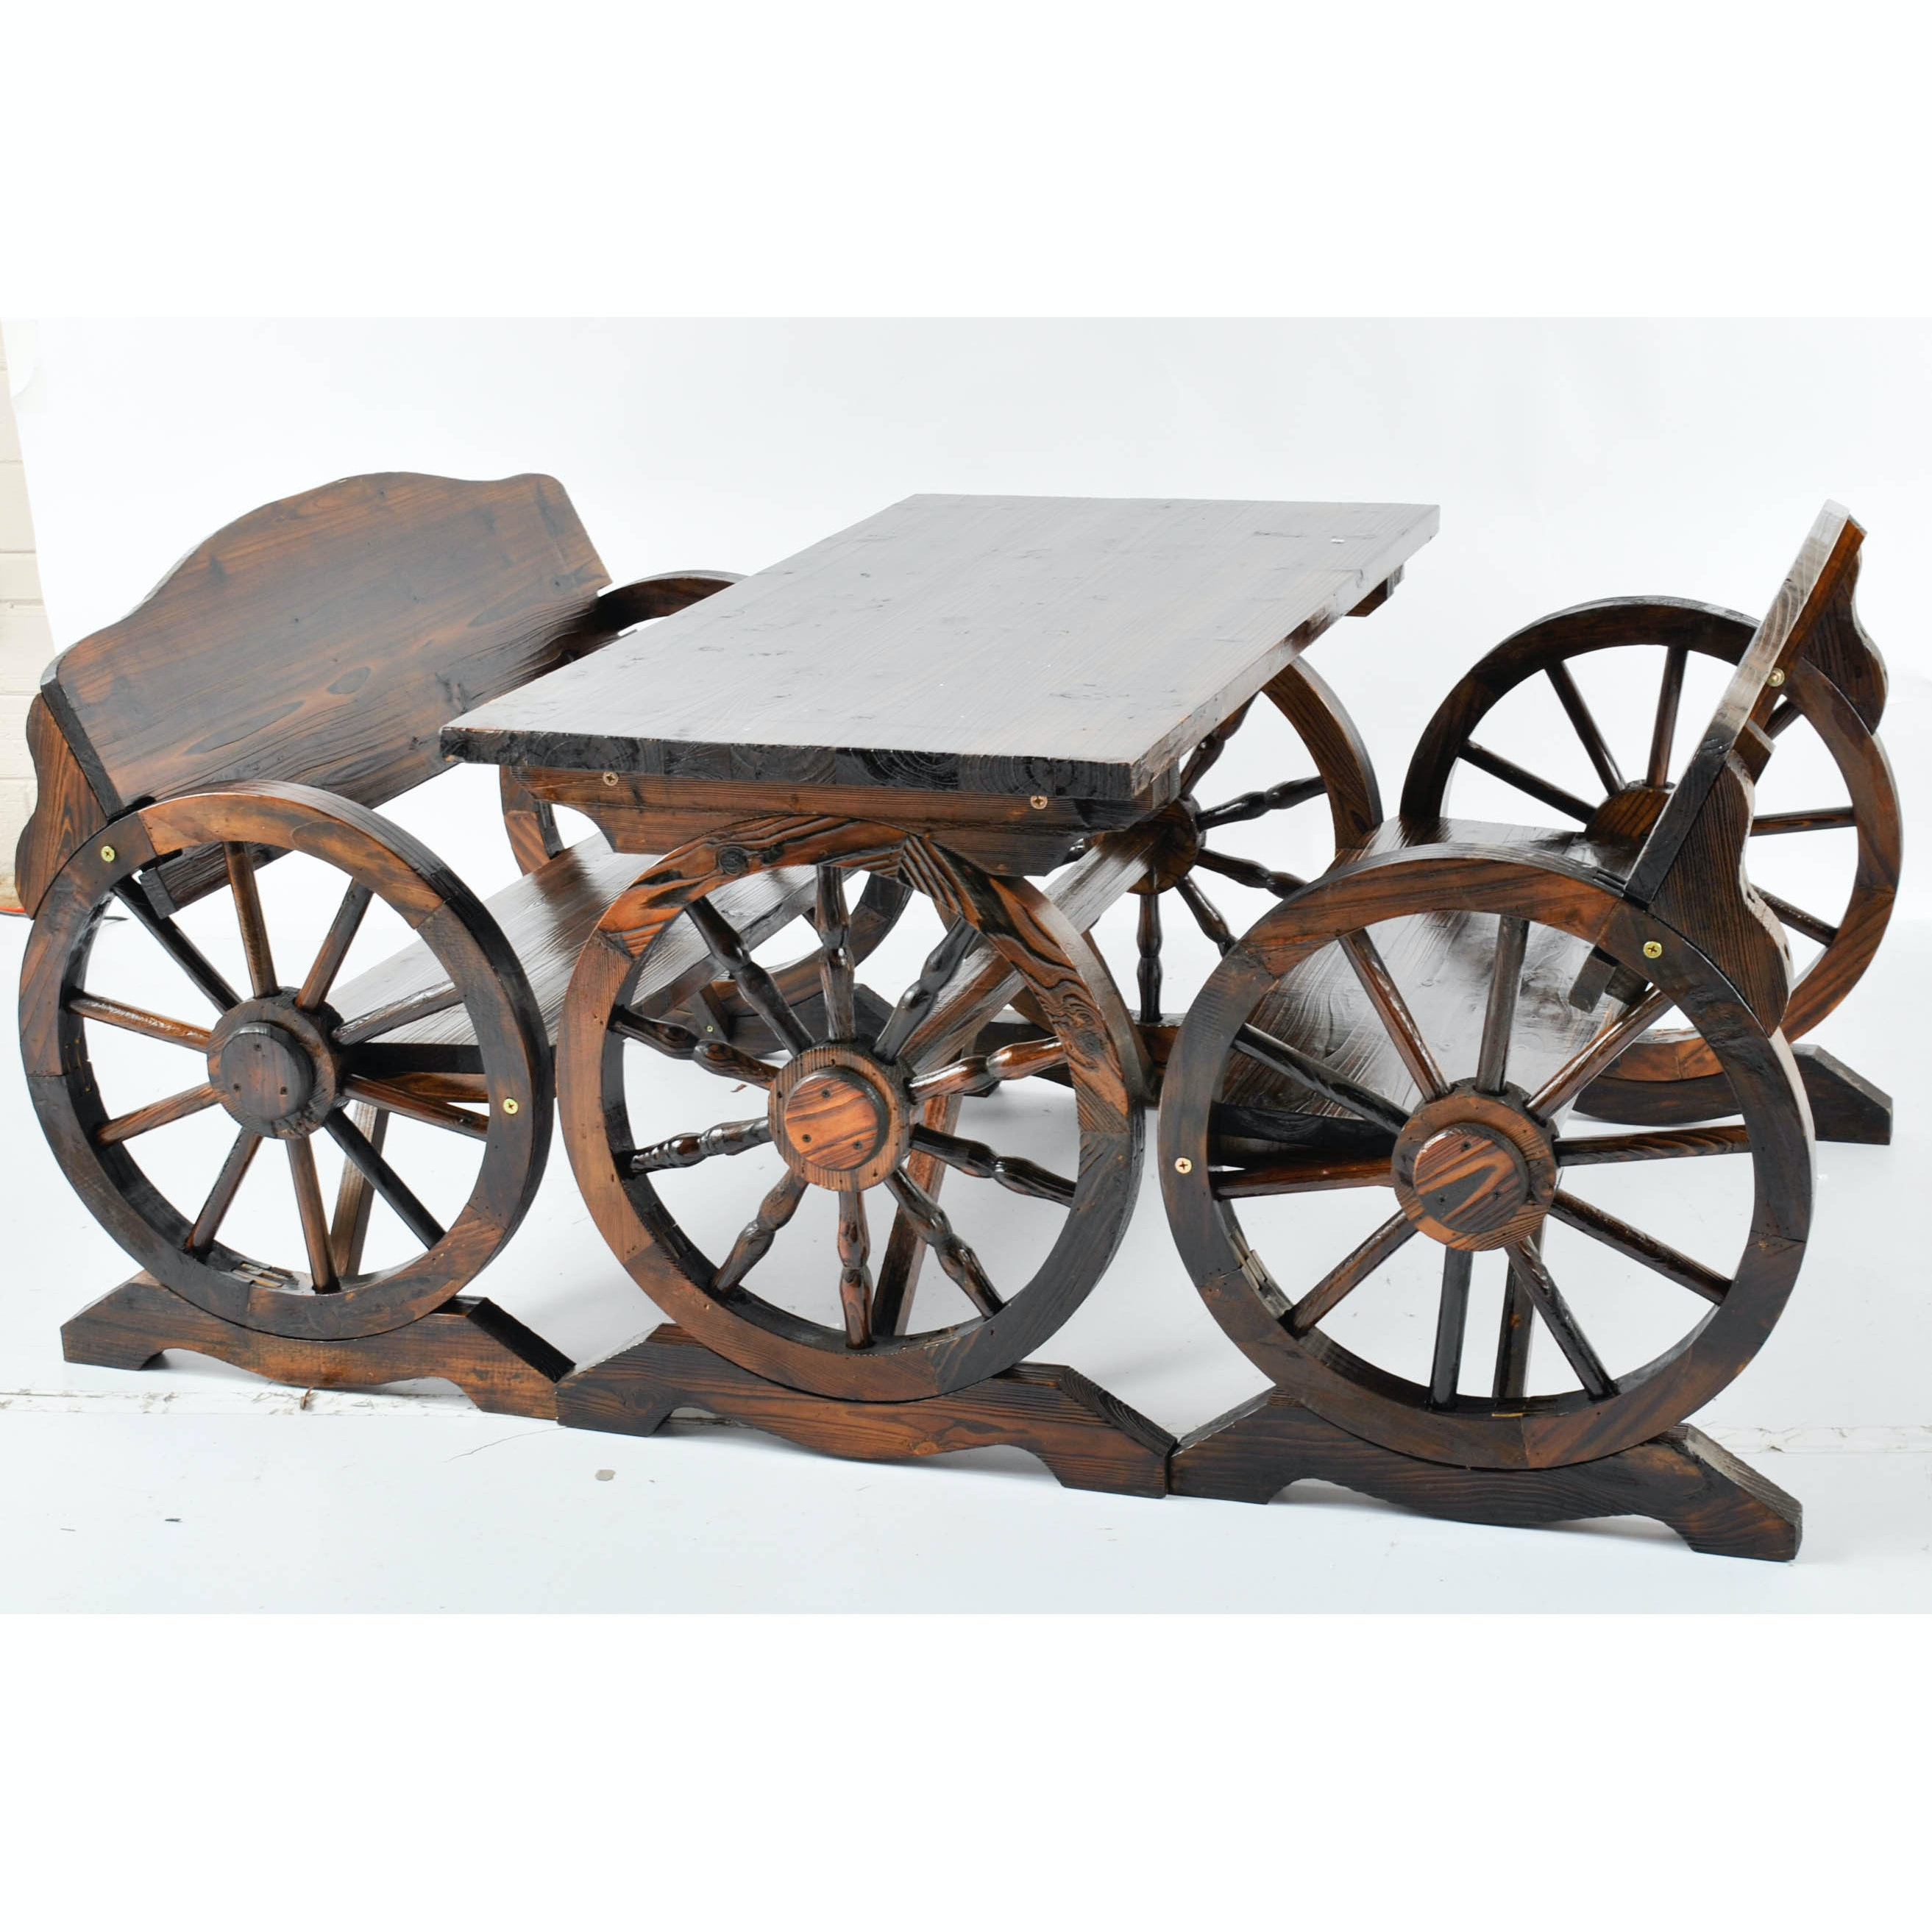 Stained Oak Wagon Style Table and Benches